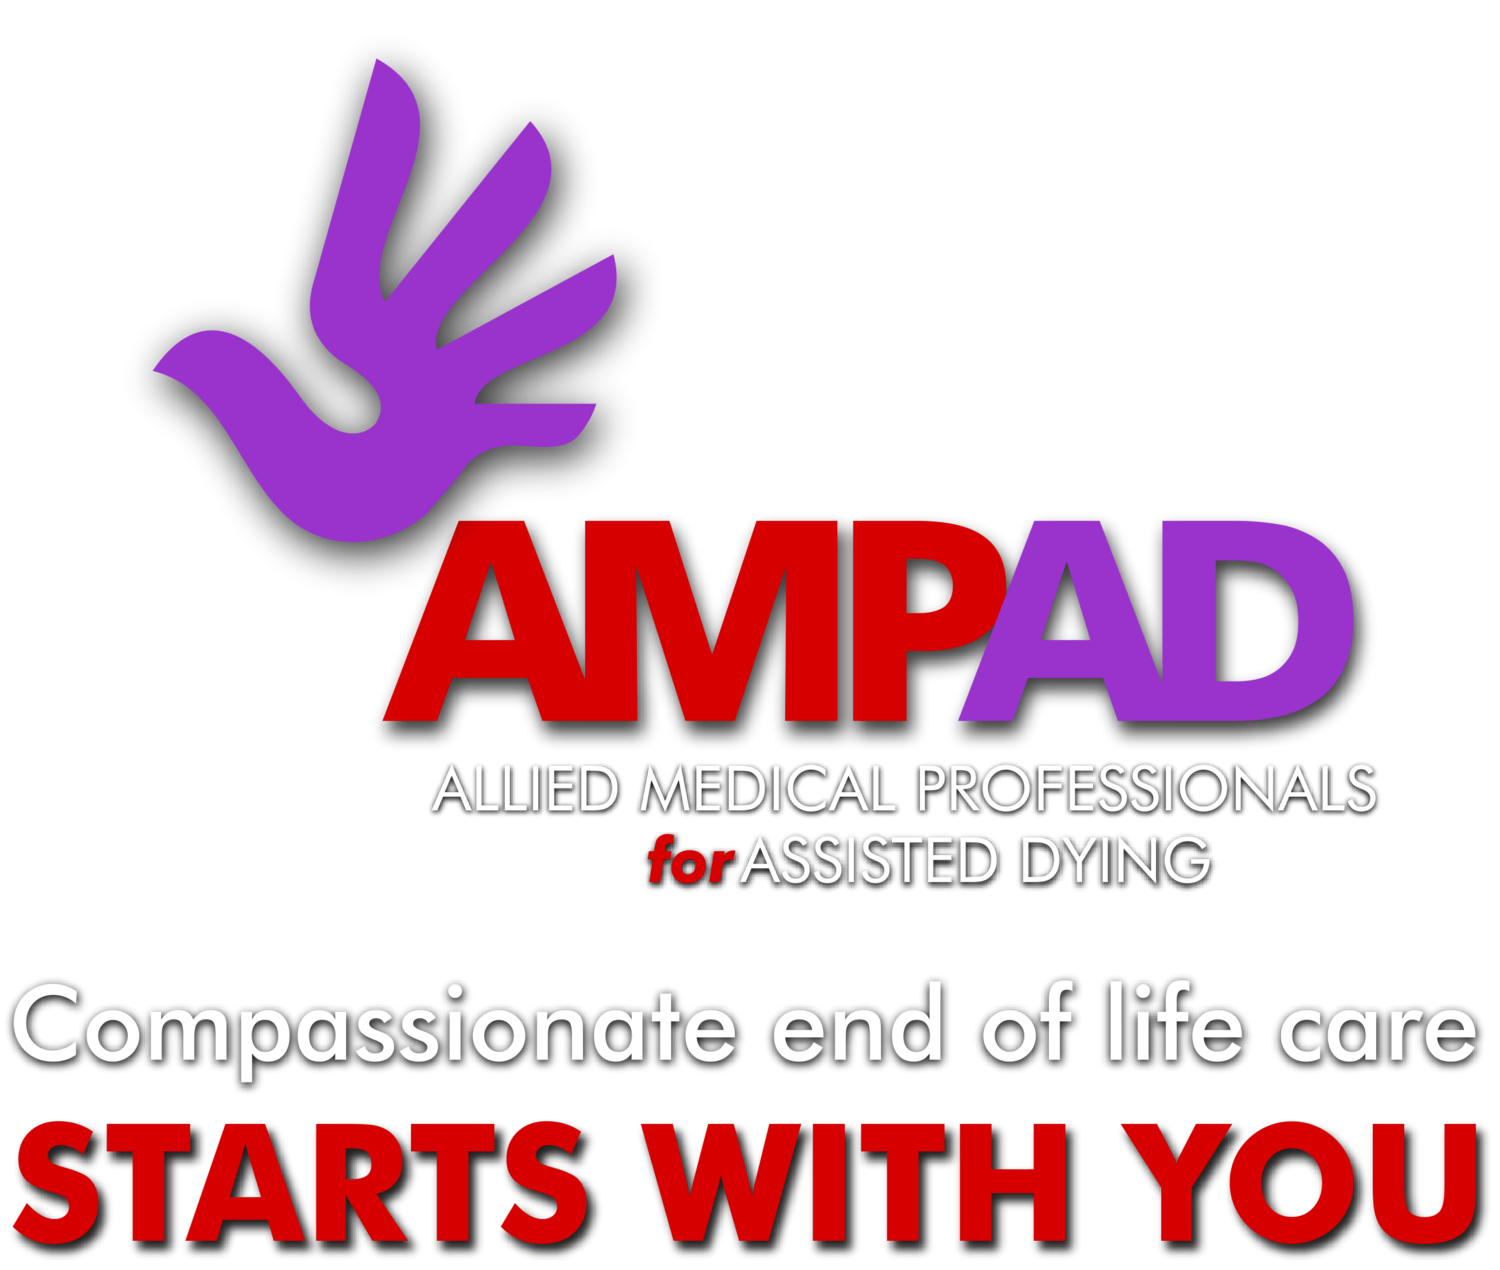 Allied Medical Professionals for Assisted Dying